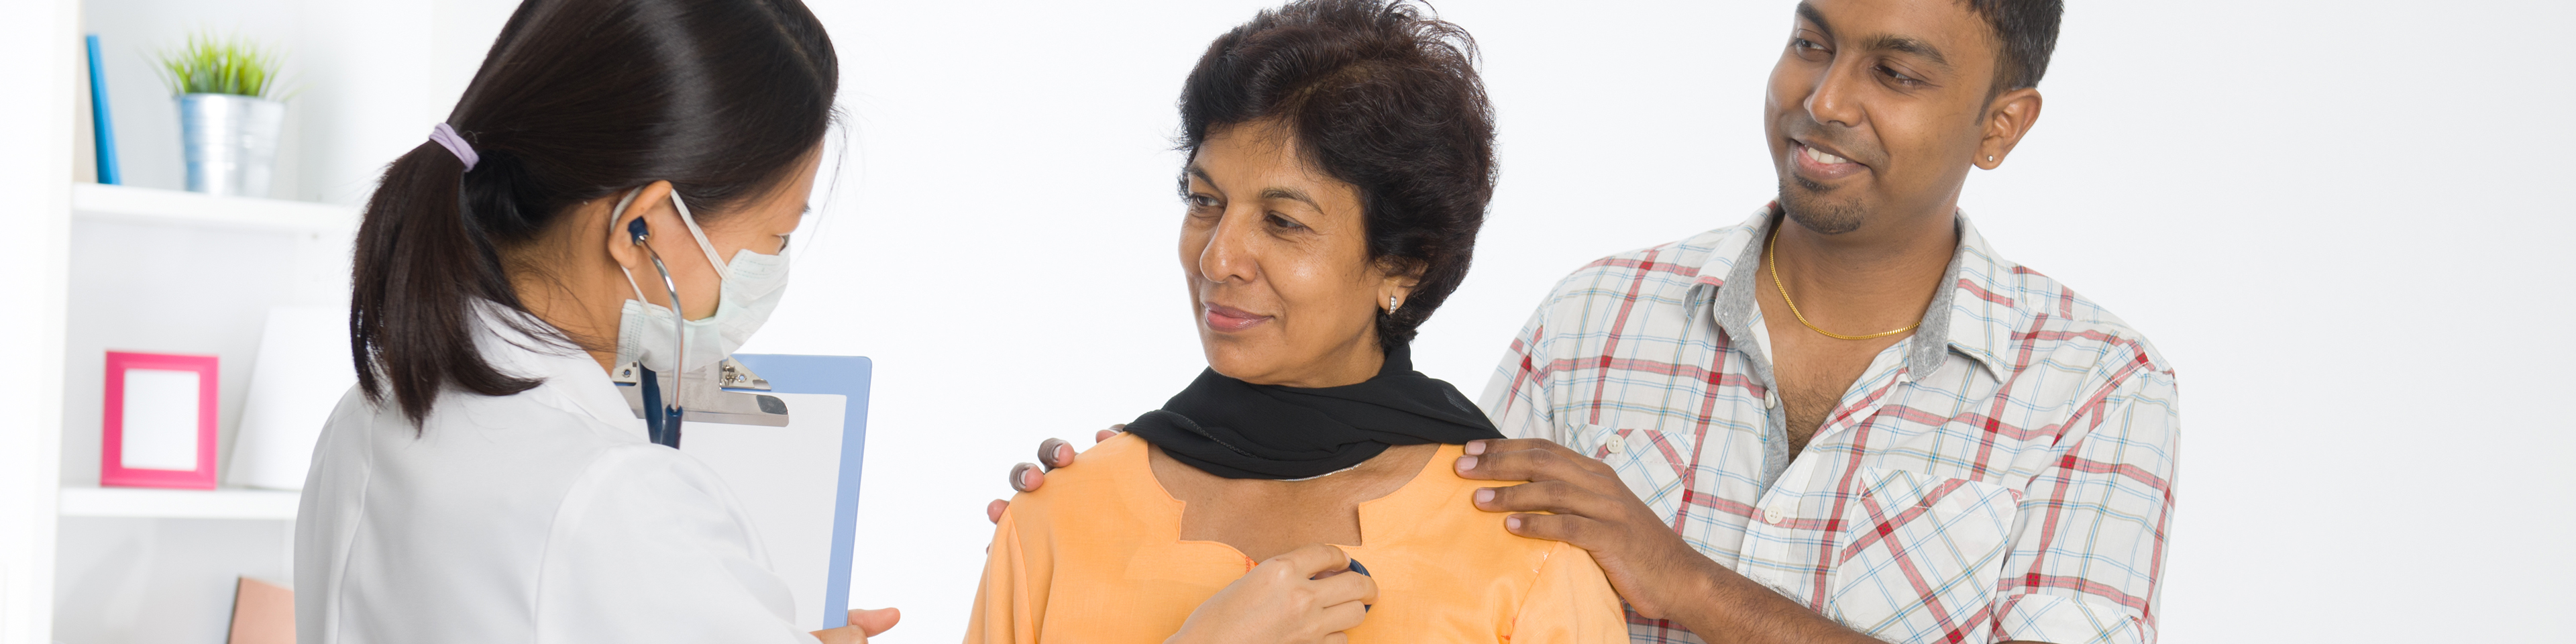 Doctor checking patient's upper chest with stethoscope while supportive family member is standing next to patient